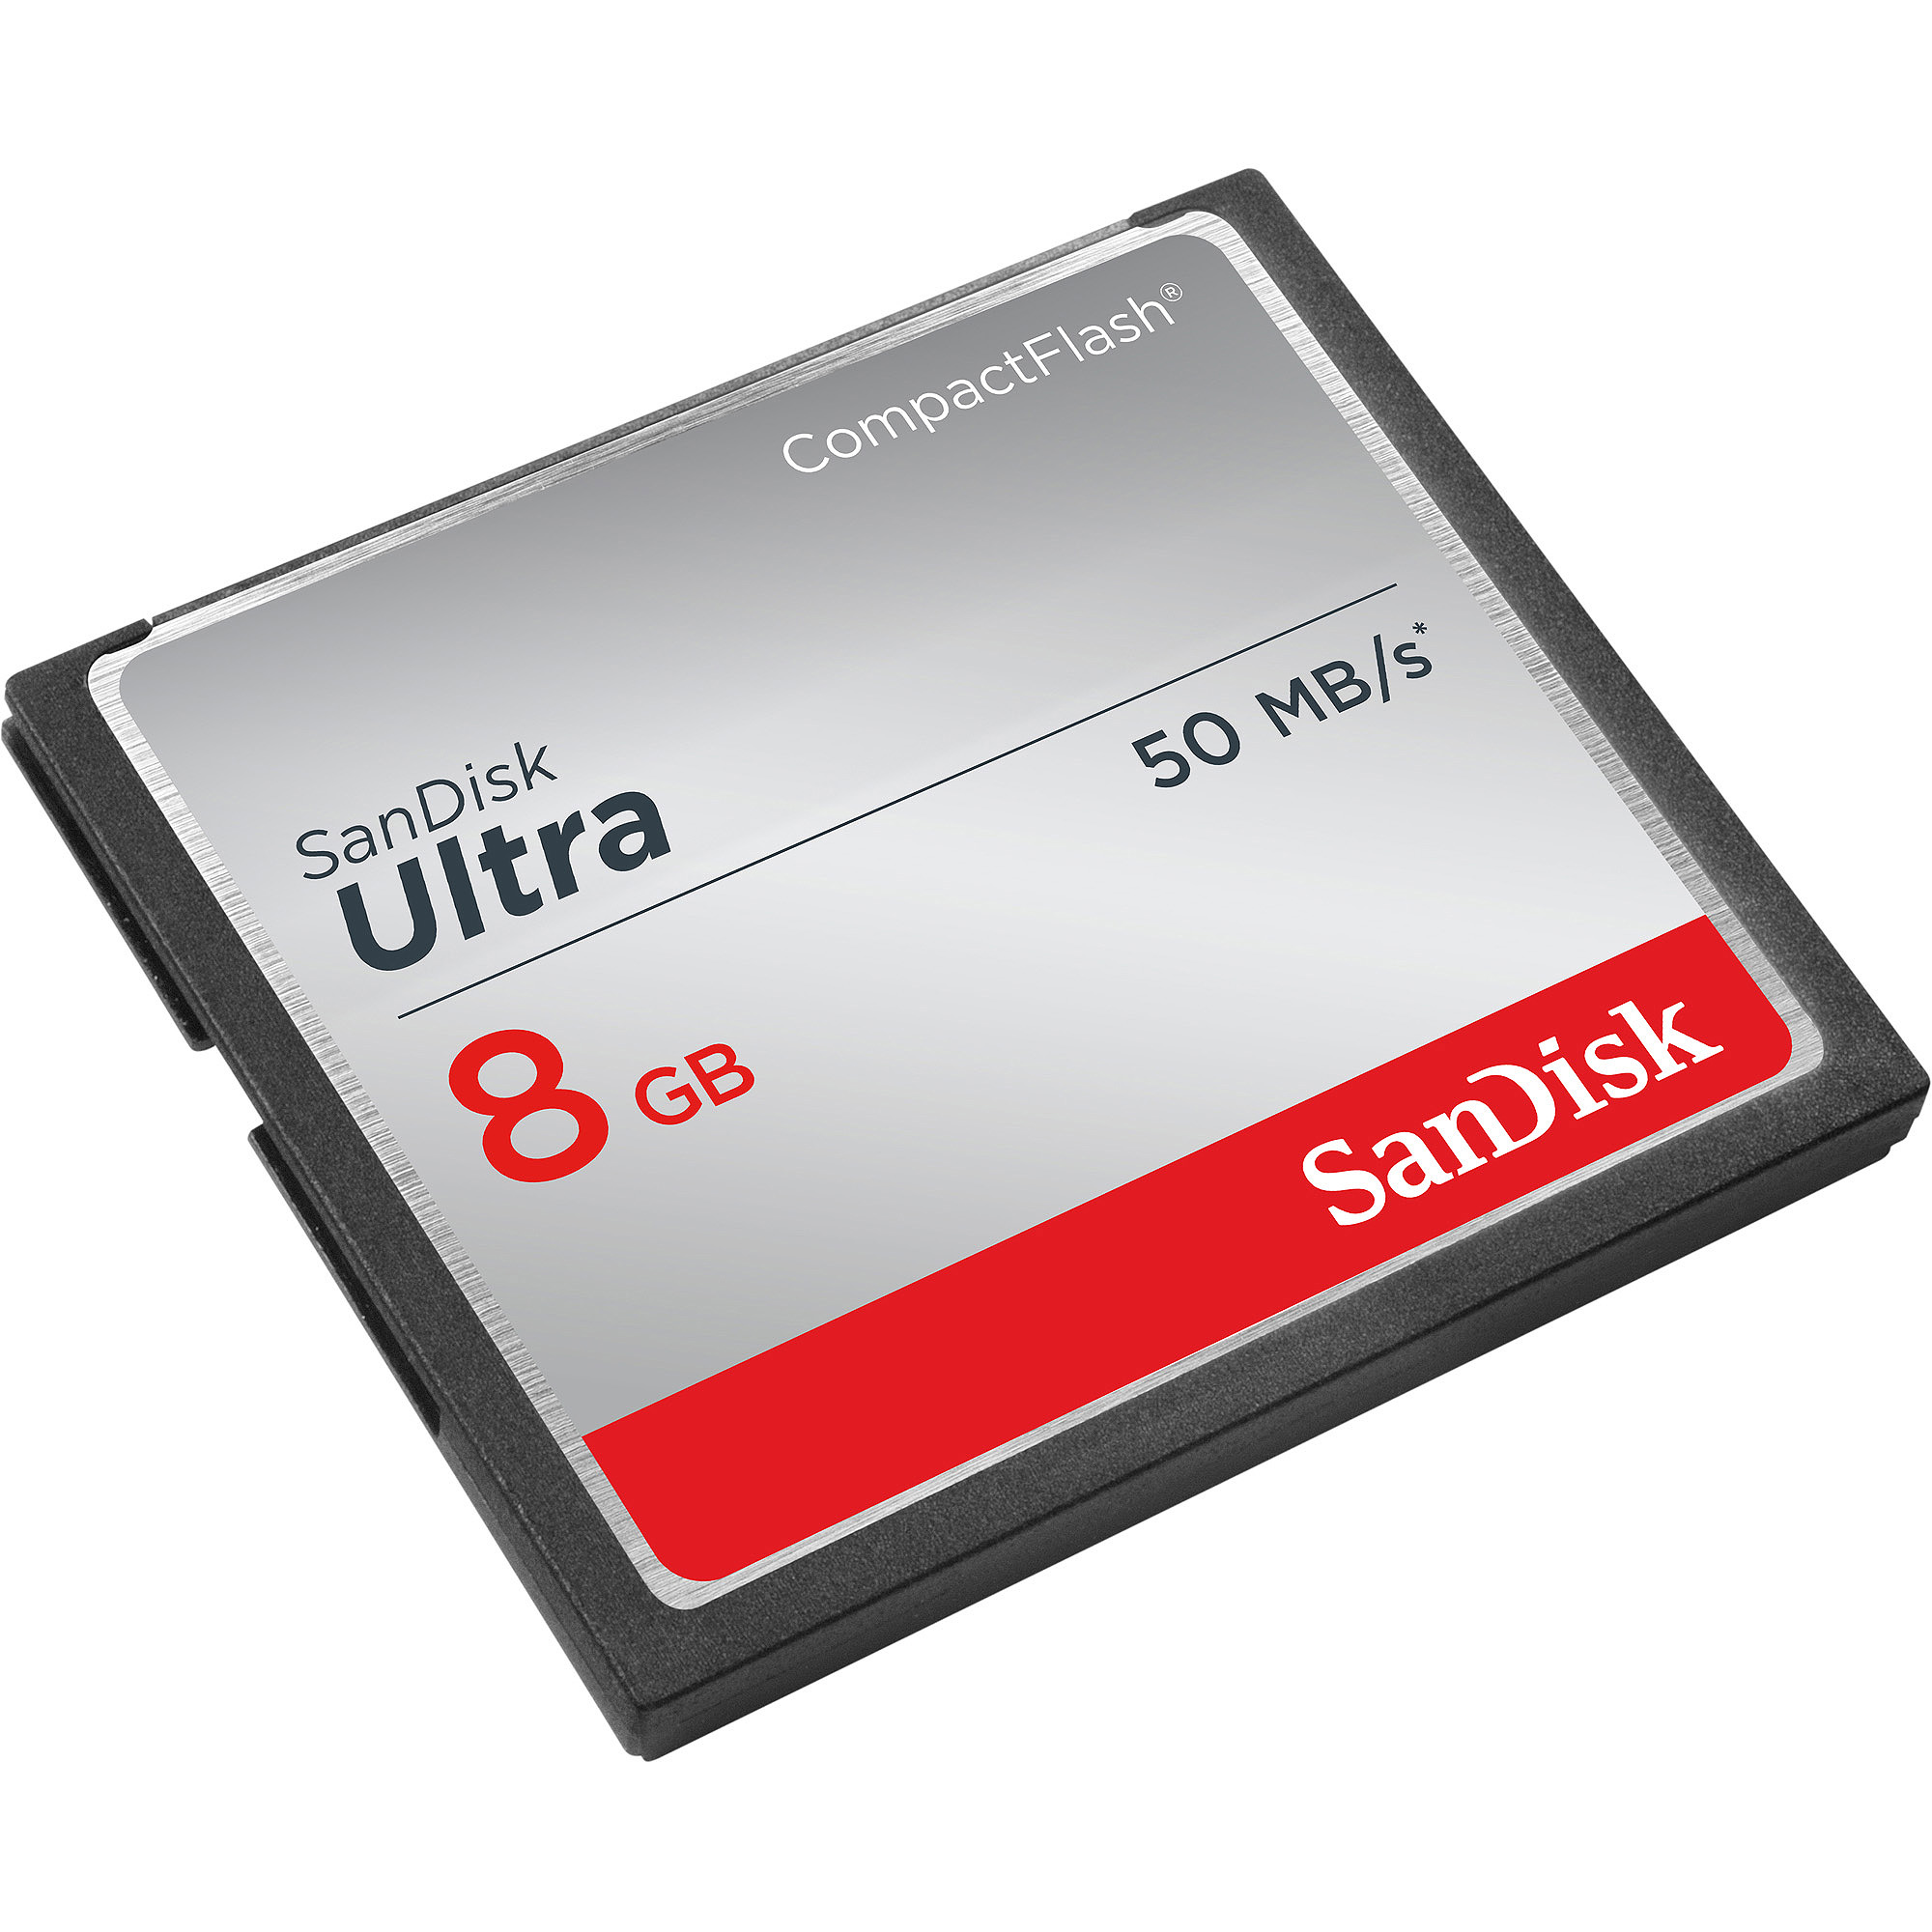 SanDisk Ultra CompactFlash 8GB Memory Card